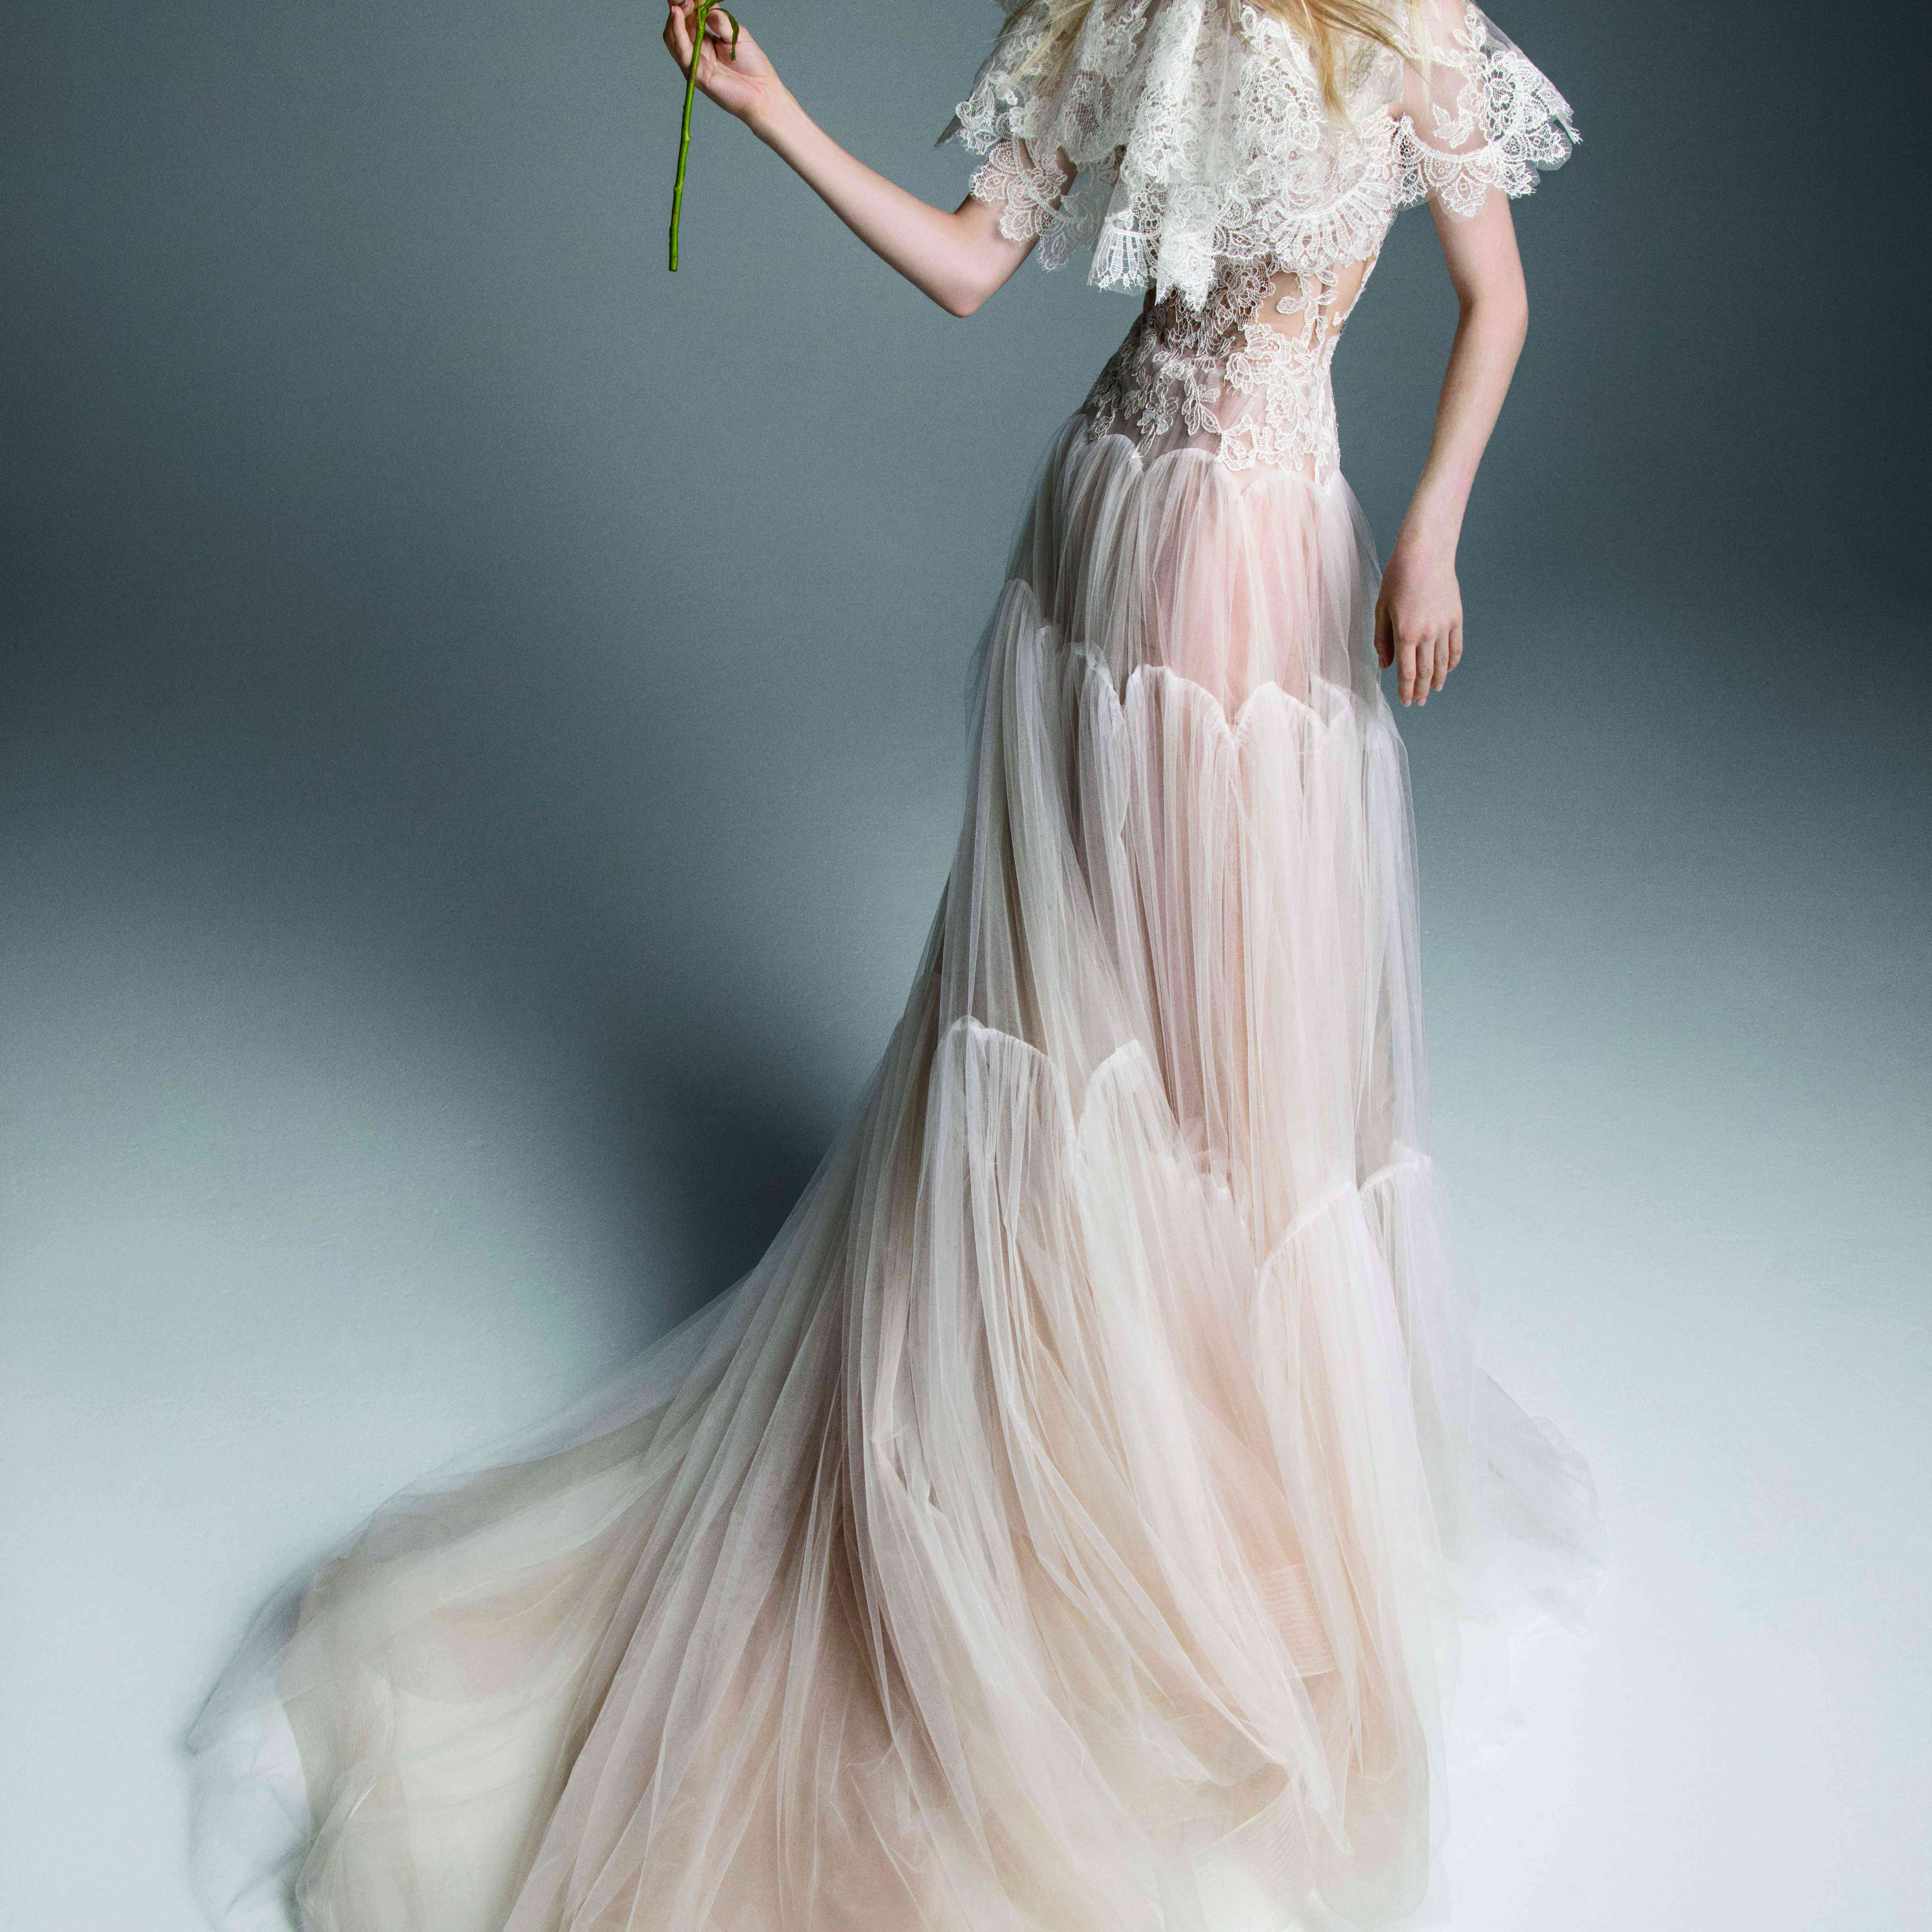 Model in tiered tulle gown with lace accents and a lace capelet